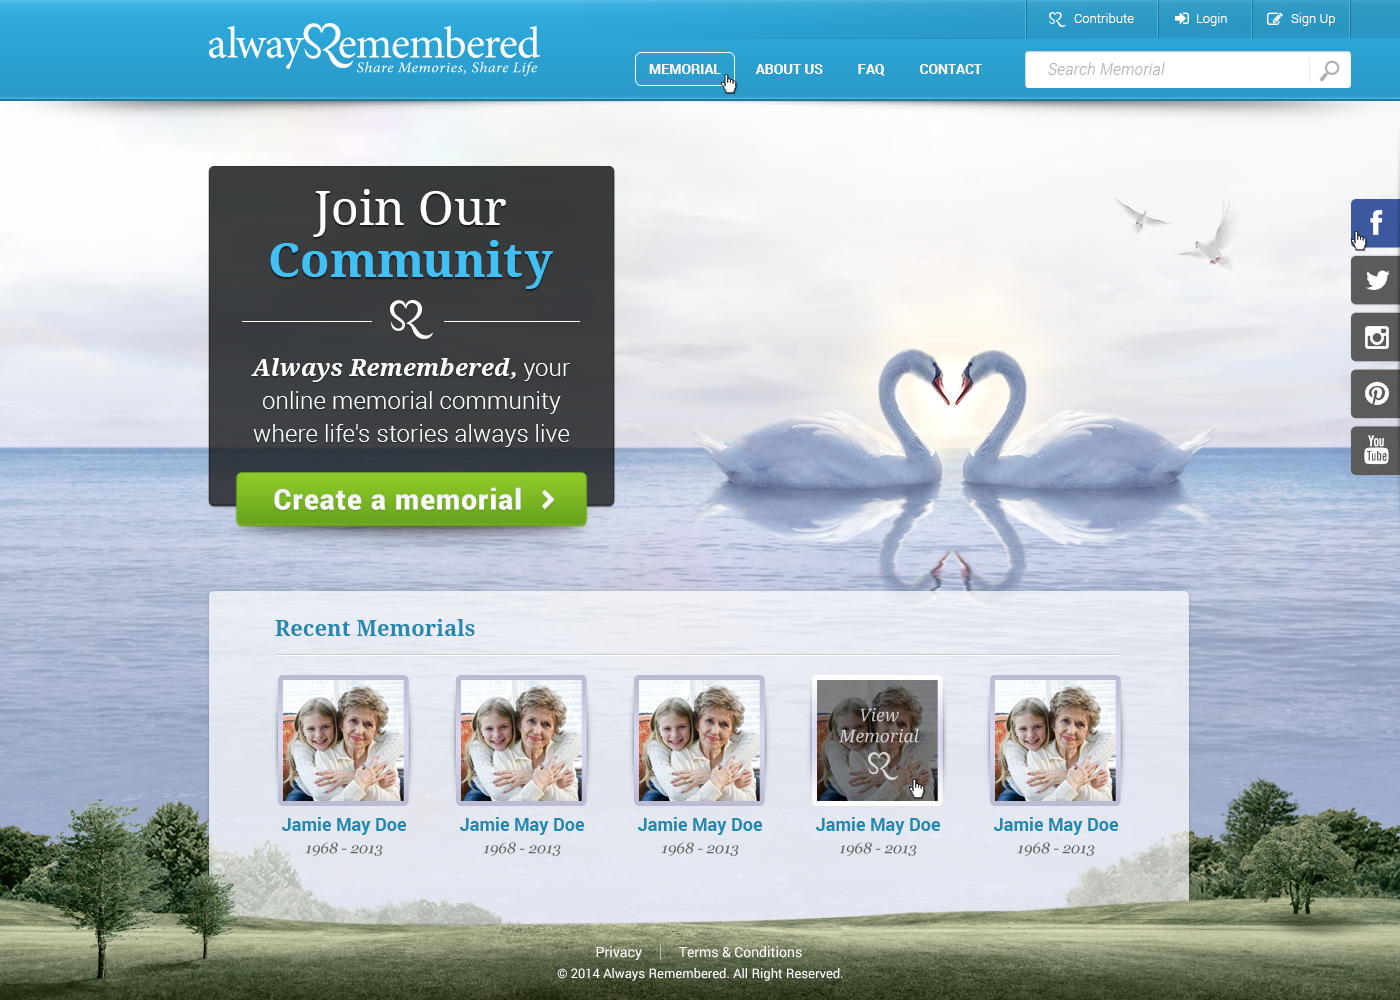 Design the winning homepage for Startup Alwaysremembered.com